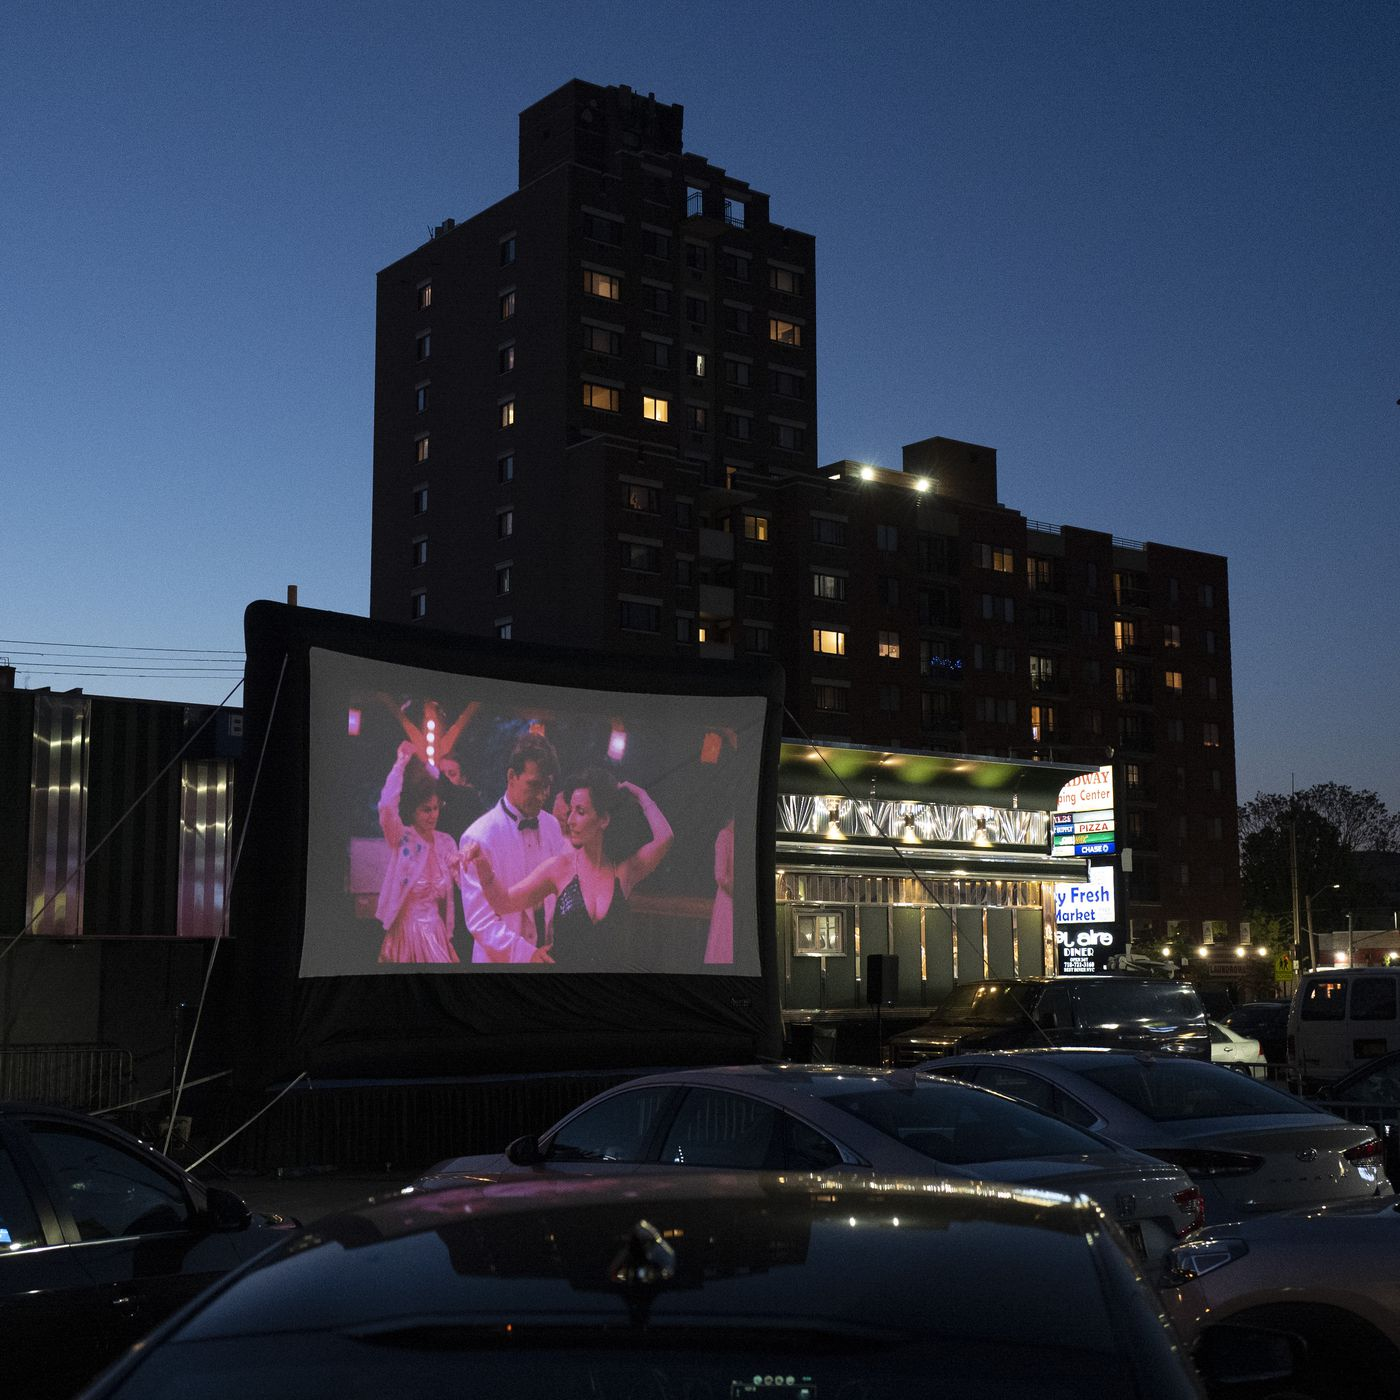 Chicago Drive In Movies Promised At Venue Close To Downtown This Summer Chicago Sun Times